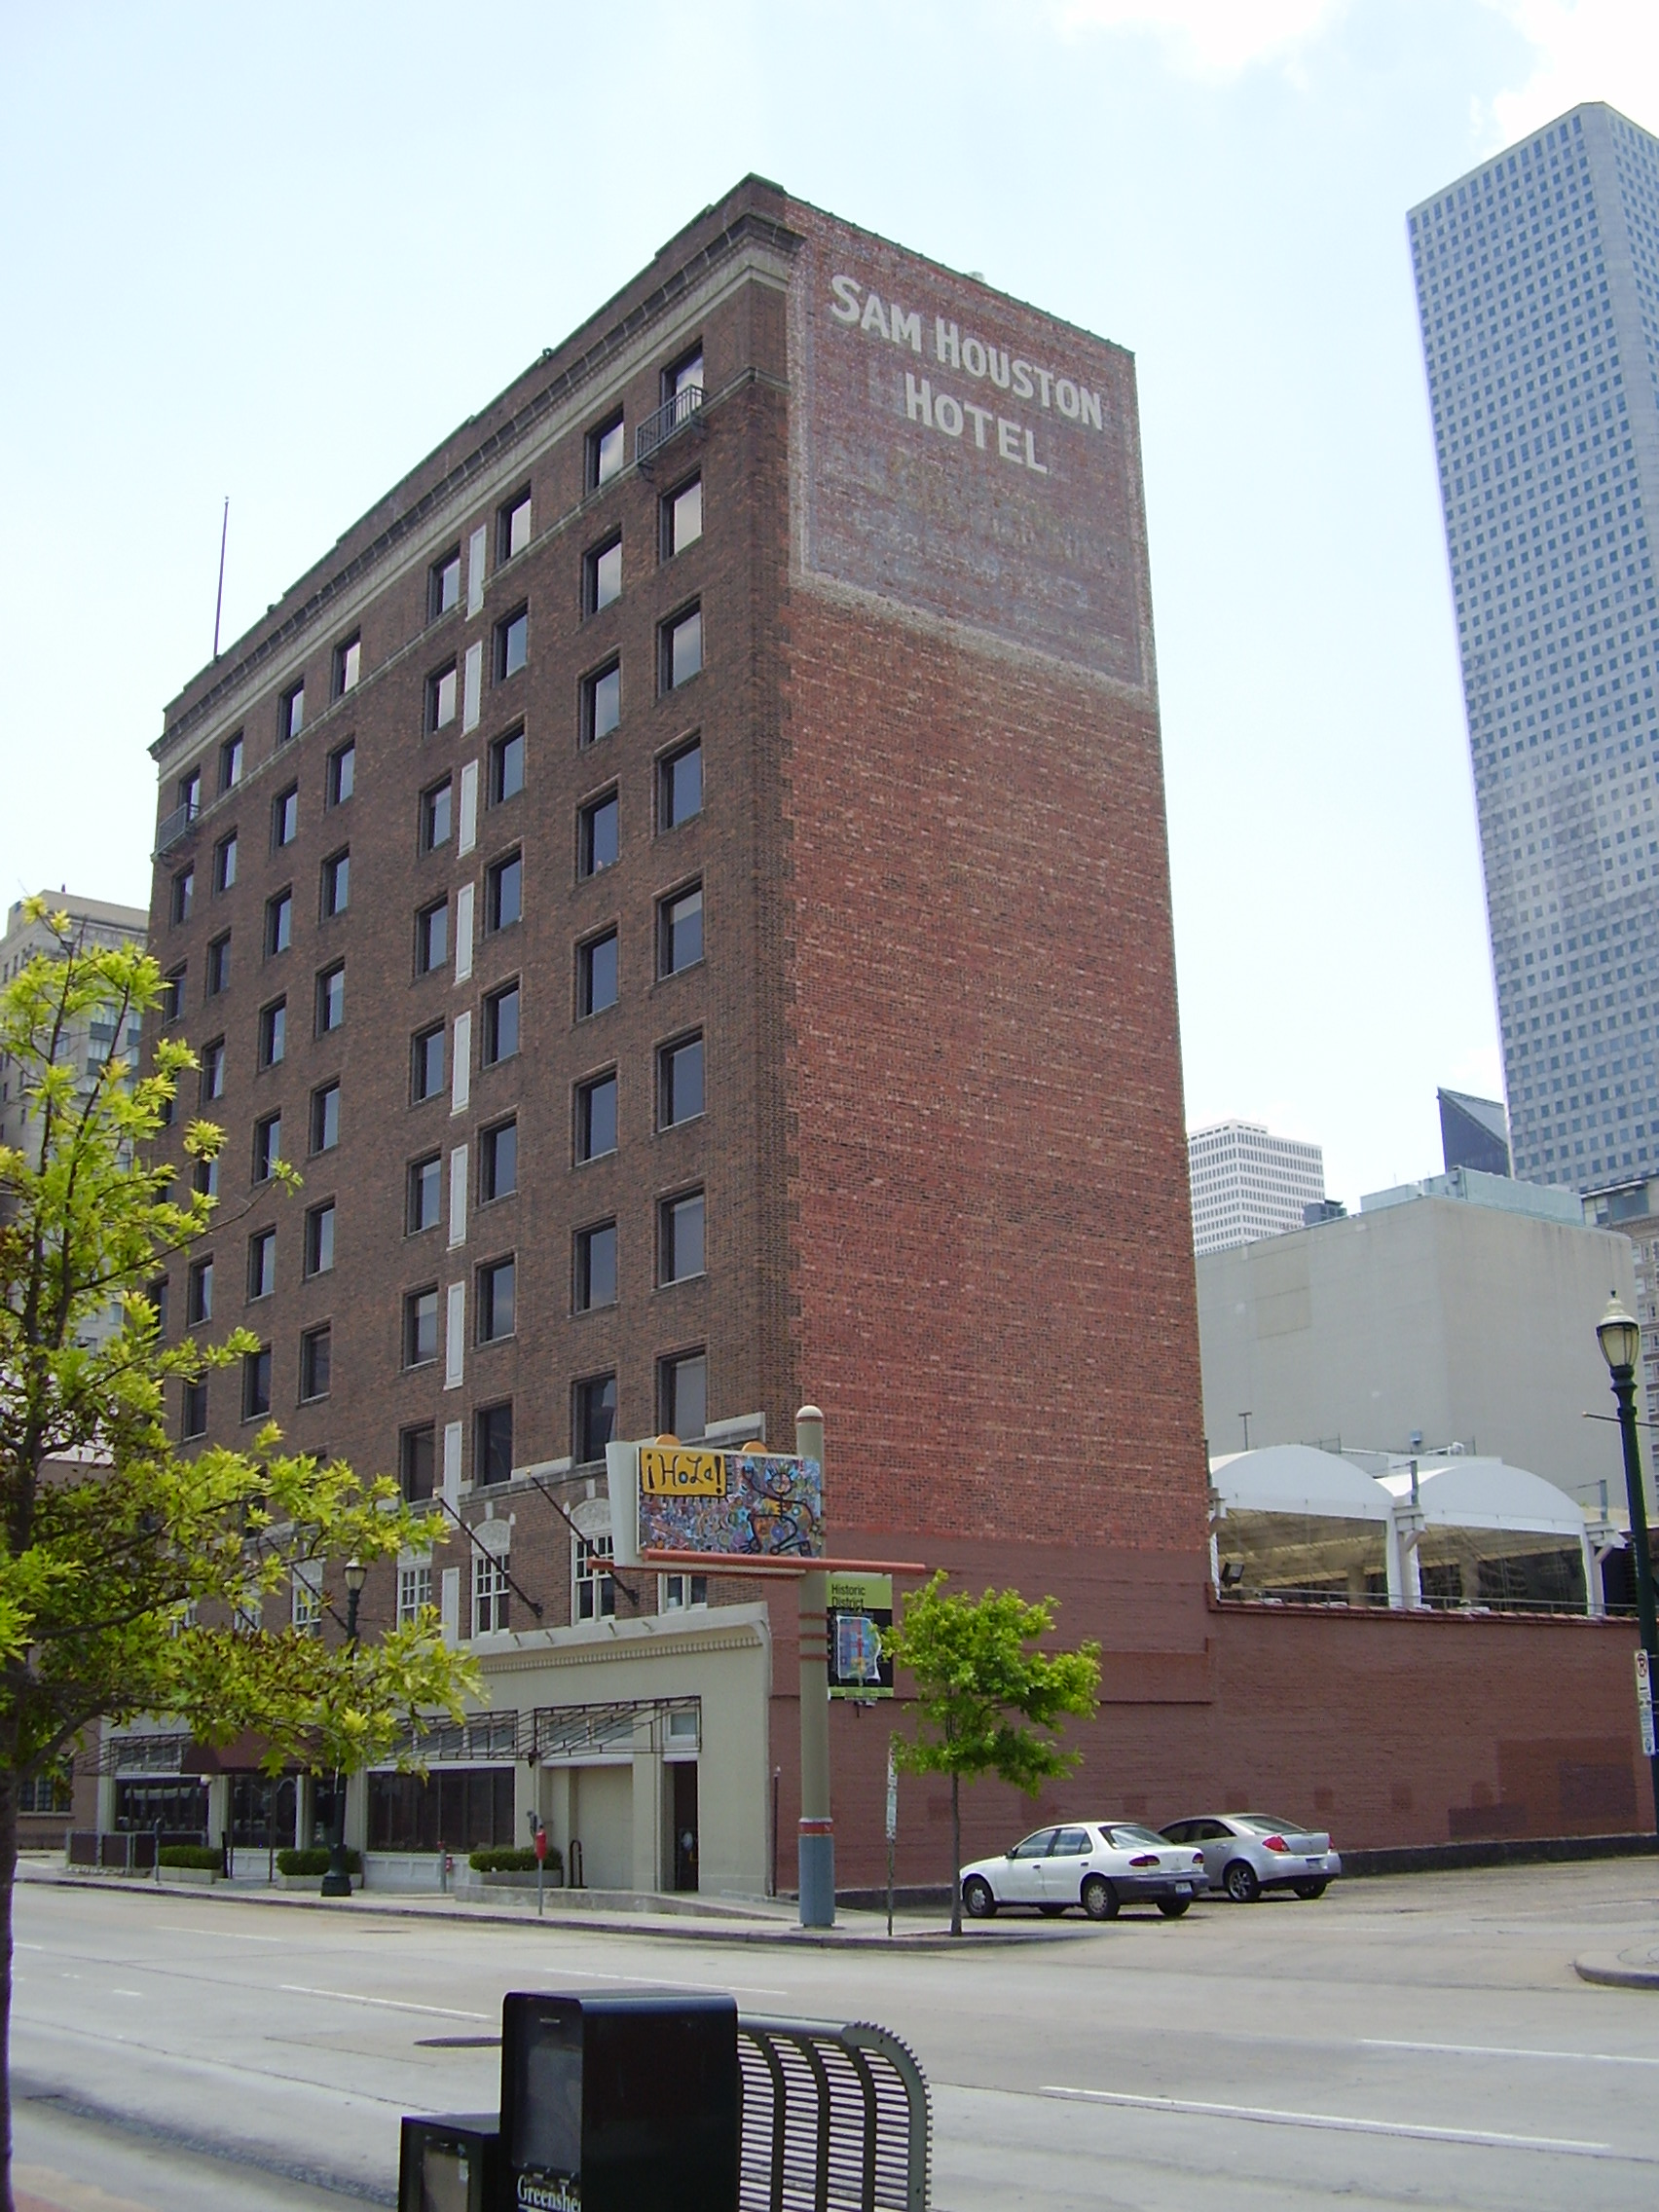 The Sam Houston Hotel - Wikipedia Map Of Hotels In Houston Tx on map of flagstaff az hotels, map of huntington beach ca hotels, map of kearney ne hotels, map of harrisburg pa hotels, map of hilton head island sc hotels, map of paris france hotels, map of new york ny hotels, map of roanoke va hotels, map of ithaca ny hotels, map of metairie la hotels, map of st augustine fl hotels, map of gulfport ms hotels, map of topeka ks hotels, map of kelowna bc hotels, map of providence ri hotels, map of grand forks nd hotels, map of san diego ca hotels, map of gulf shores al hotels, map of minneapolis mn hotels, map of dubuque ia hotels,